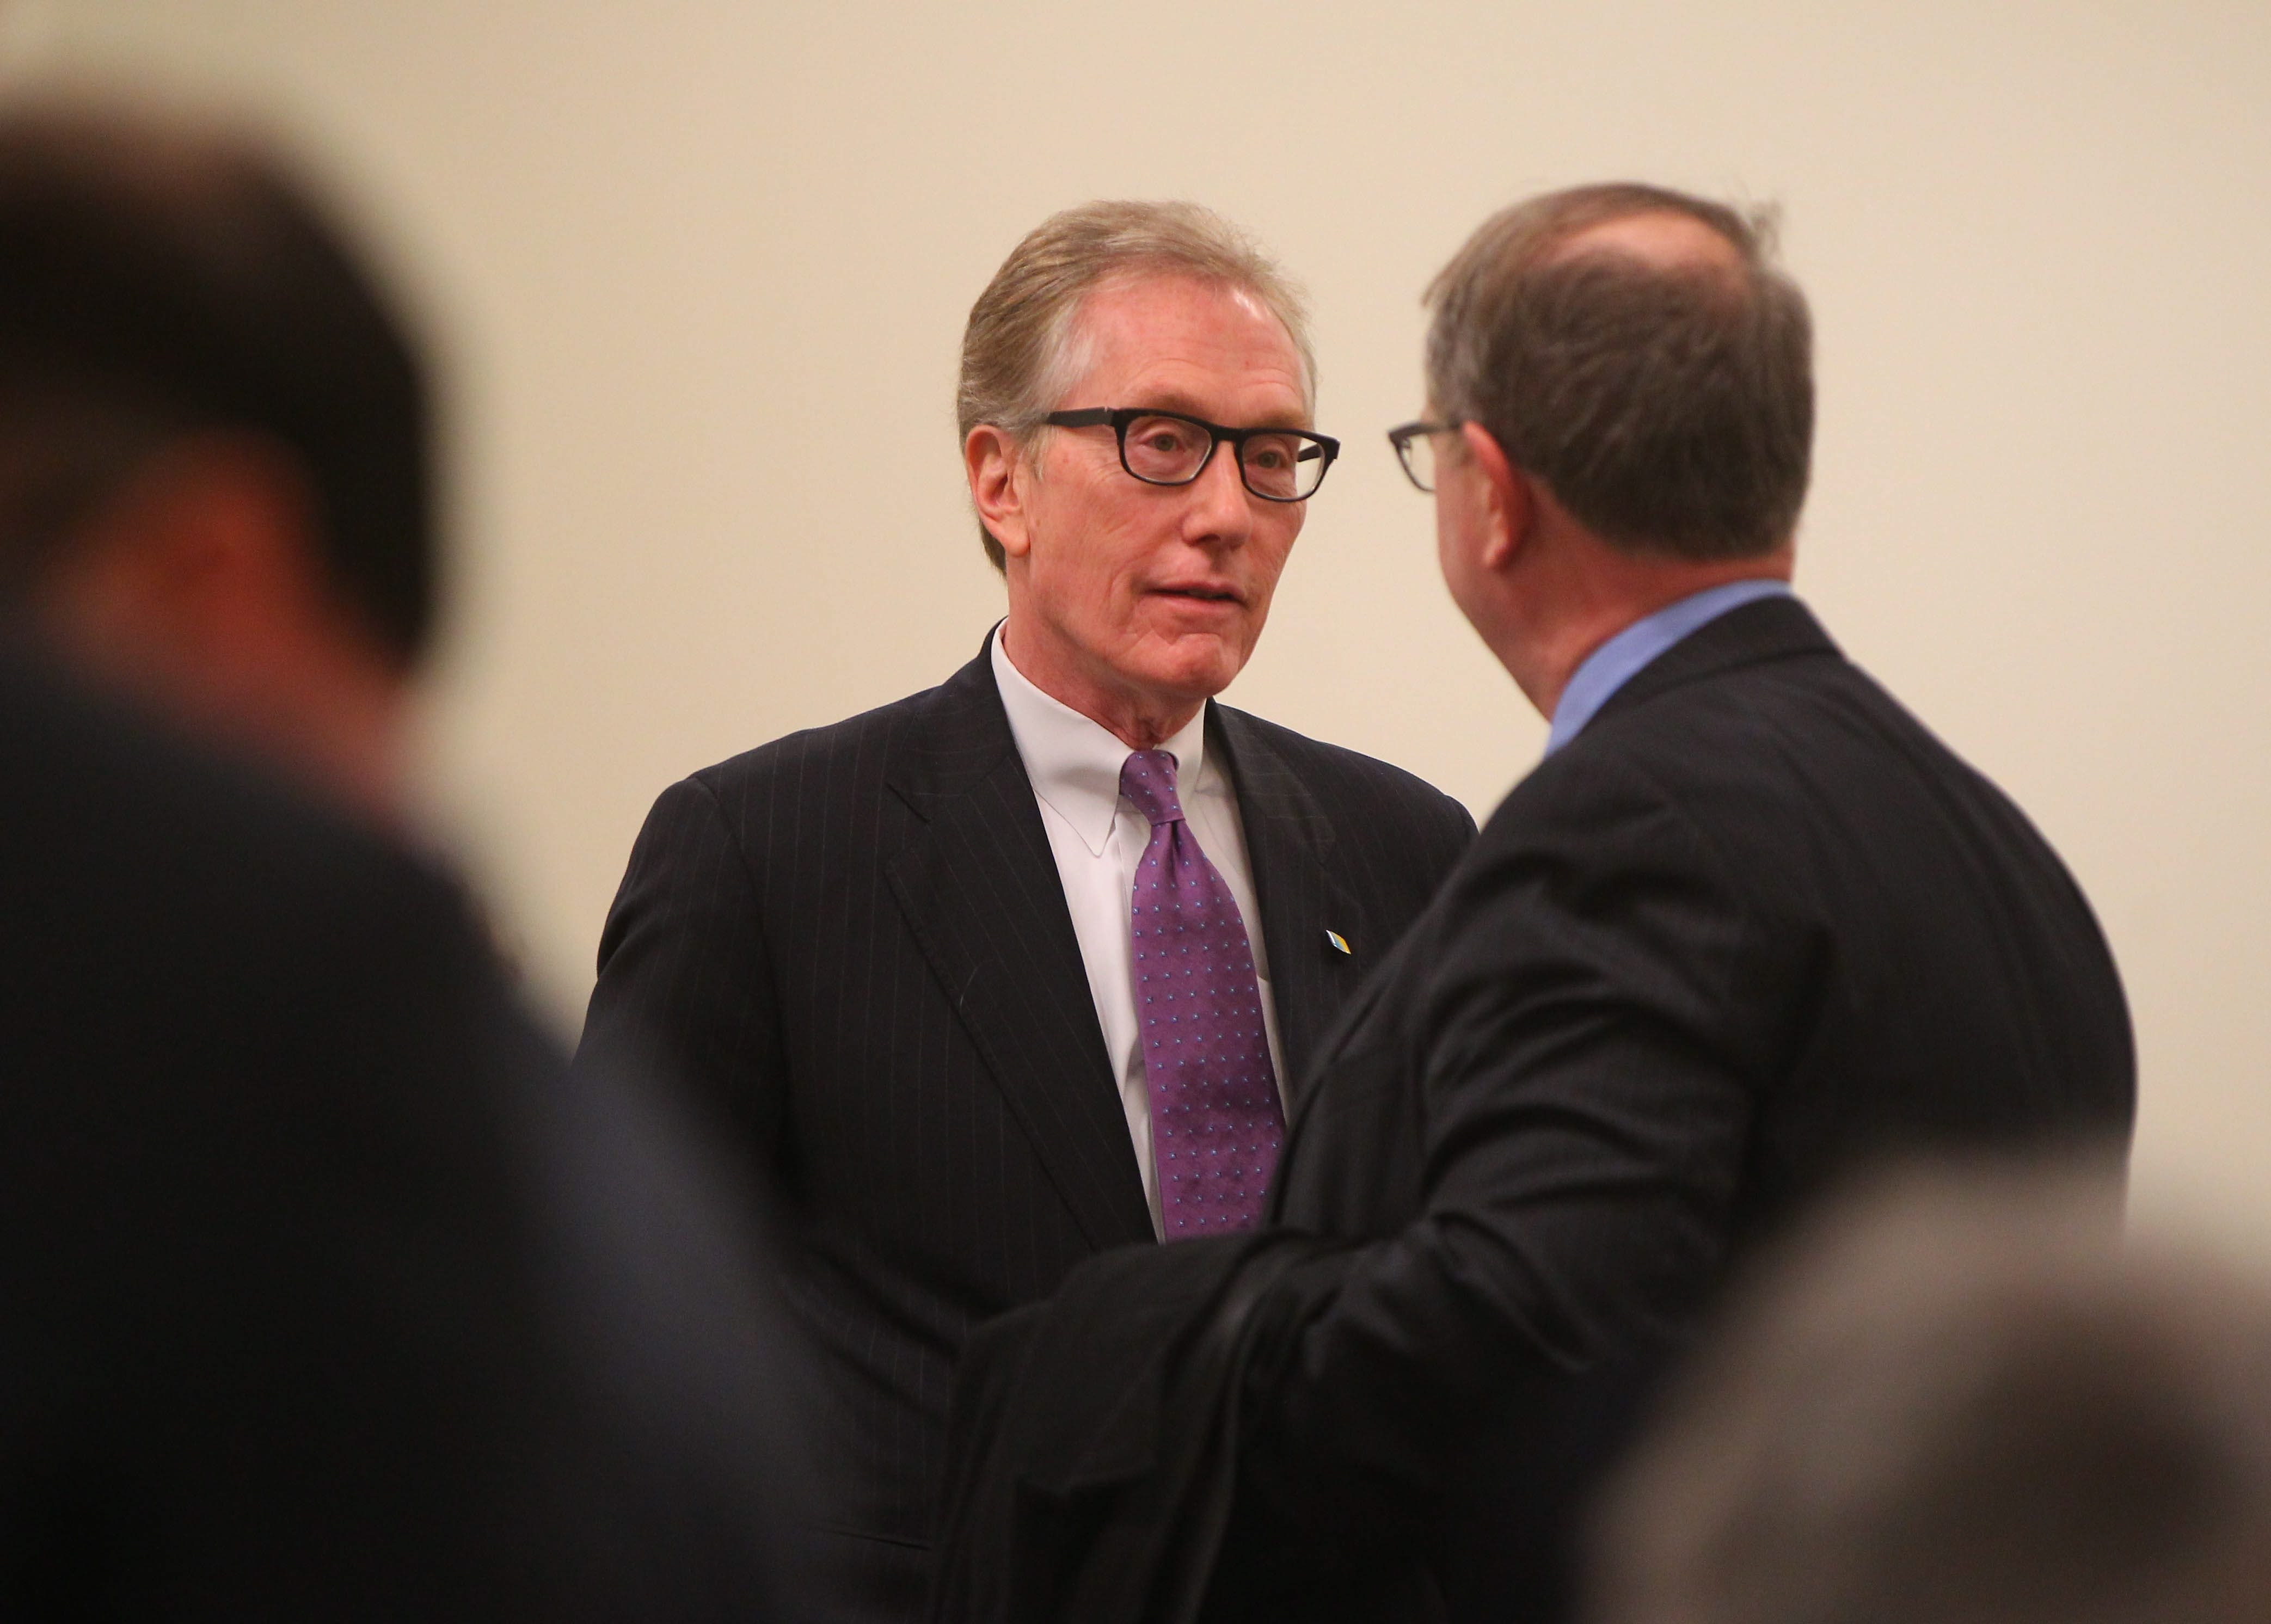 First Niagara CEO Gary Crosby, left, speaks with shareholders after a special meeting in the Larkin Exchange Building in Buffalo last month.